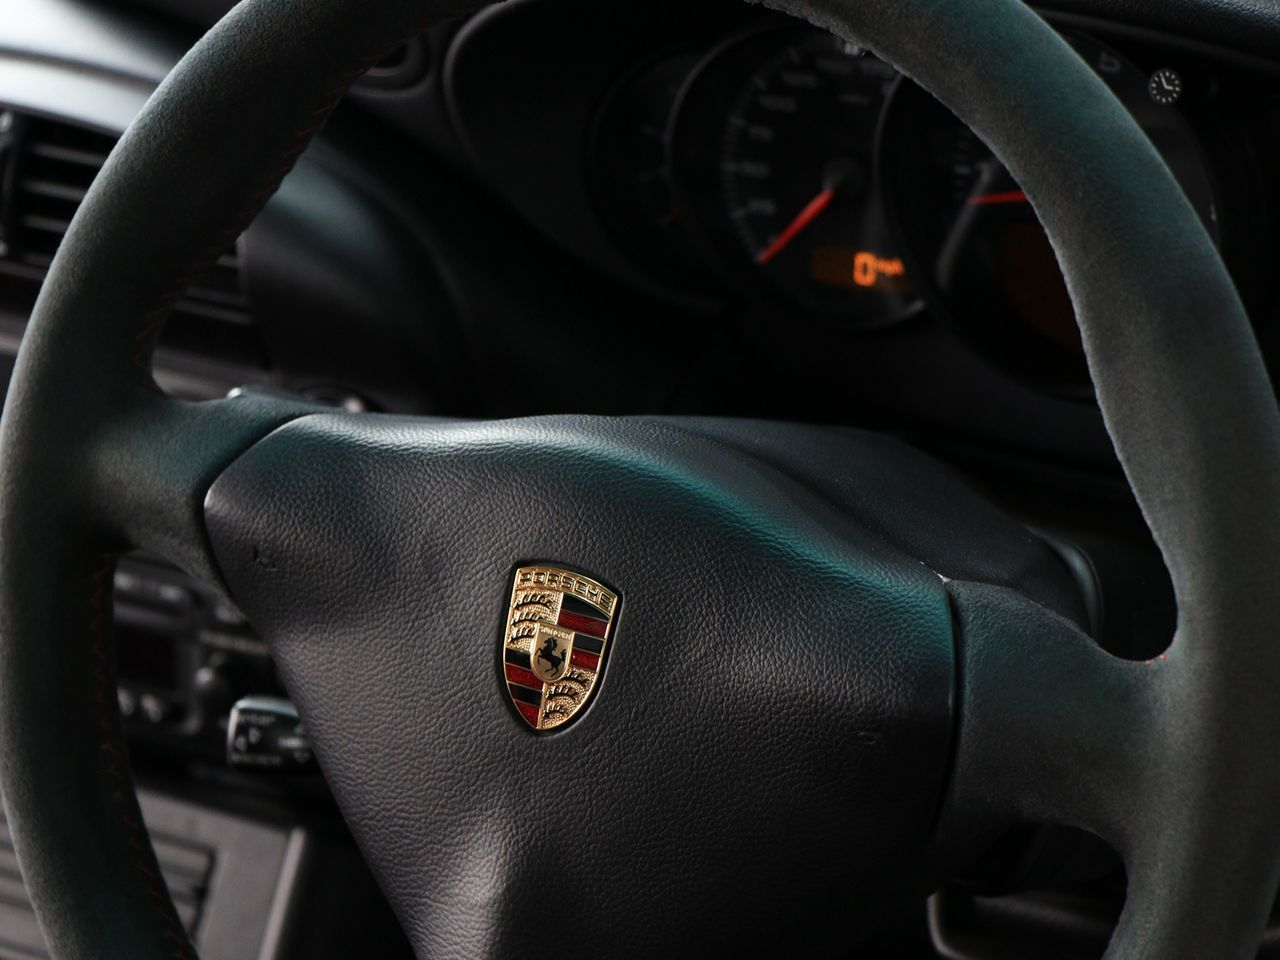 911 (996) GT3 RS image 19